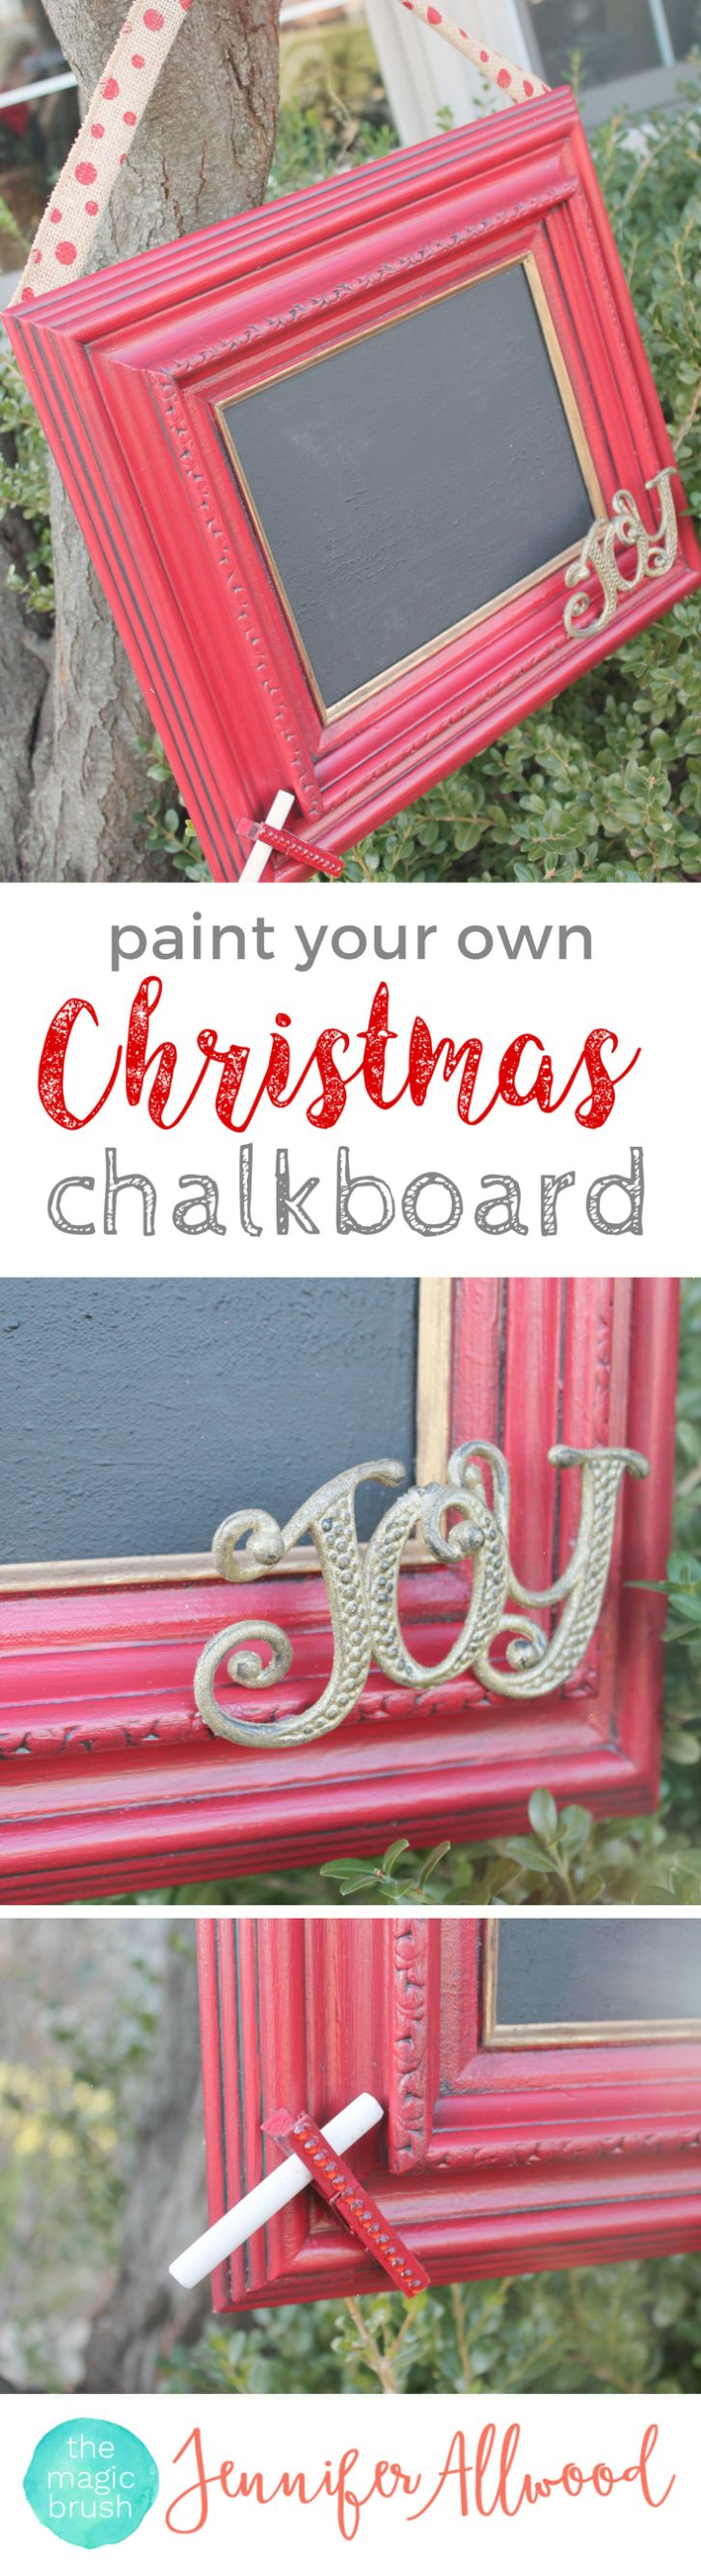 Diy Christmas Chalkboard Sign - The Magic Brush - These